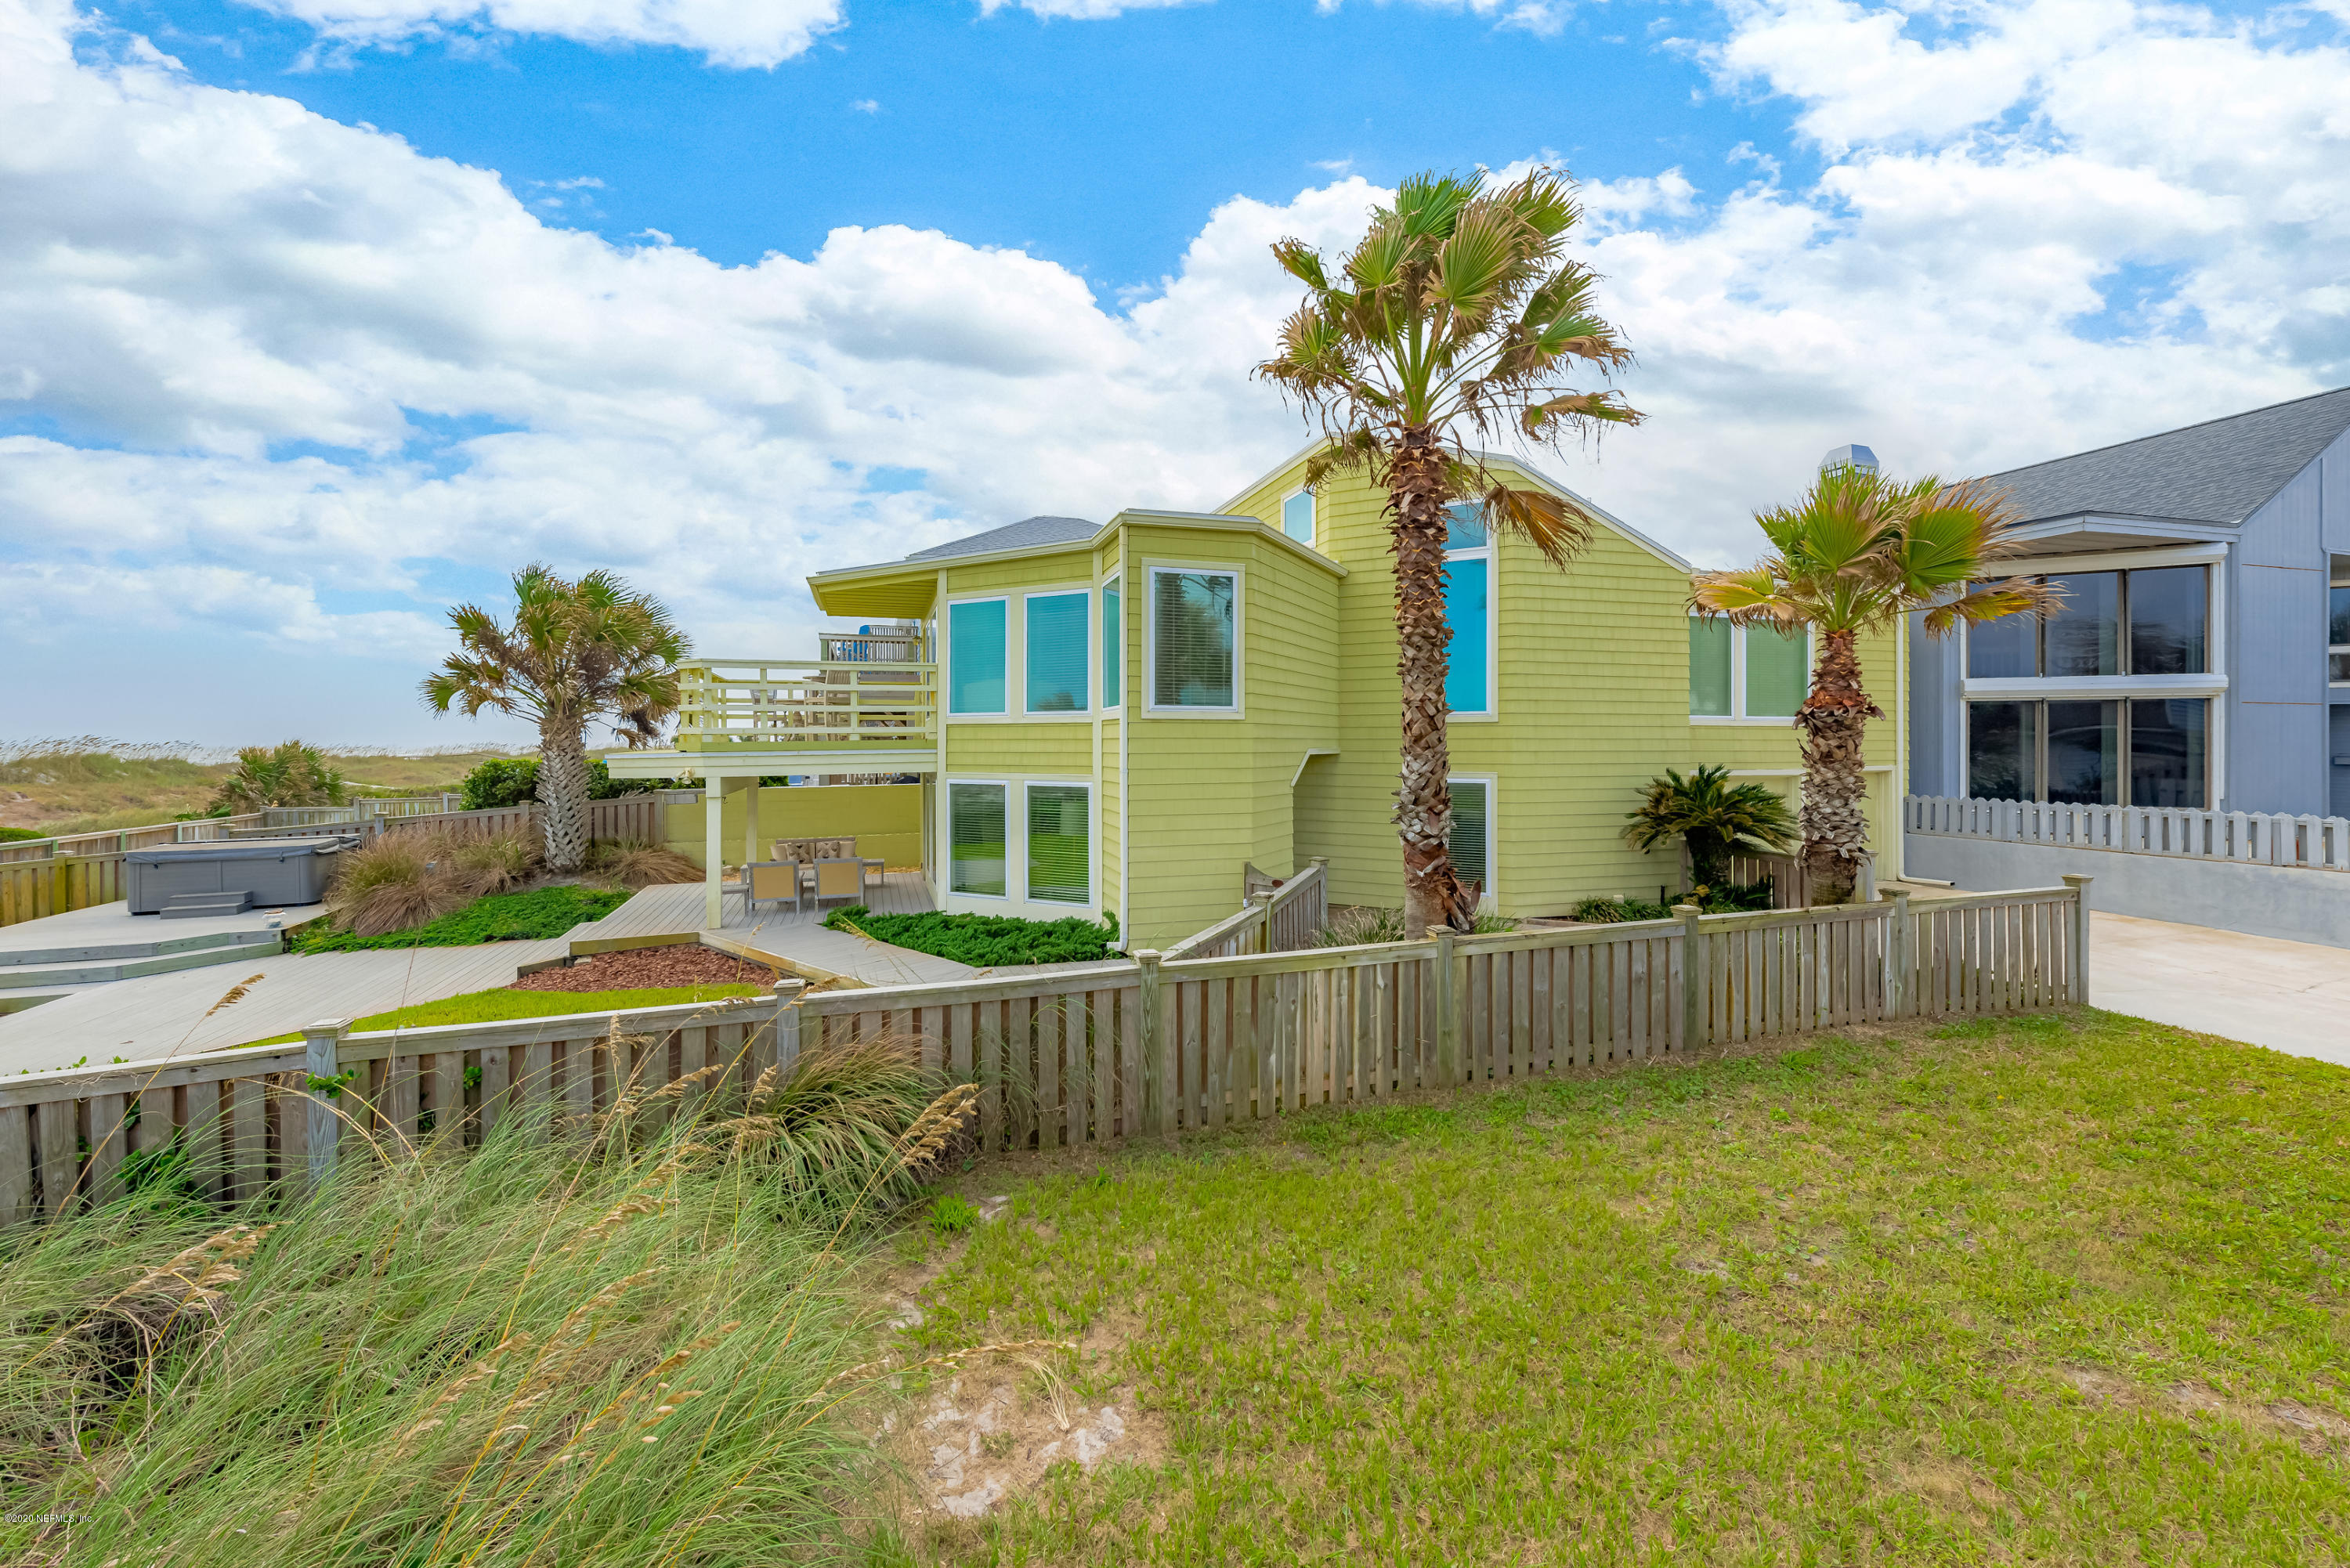 93 ORANGE, NEPTUNE BEACH, FLORIDA 32266, 5 Bedrooms Bedrooms, ,4 BathroomsBathrooms,Residential,For sale,ORANGE,1078837